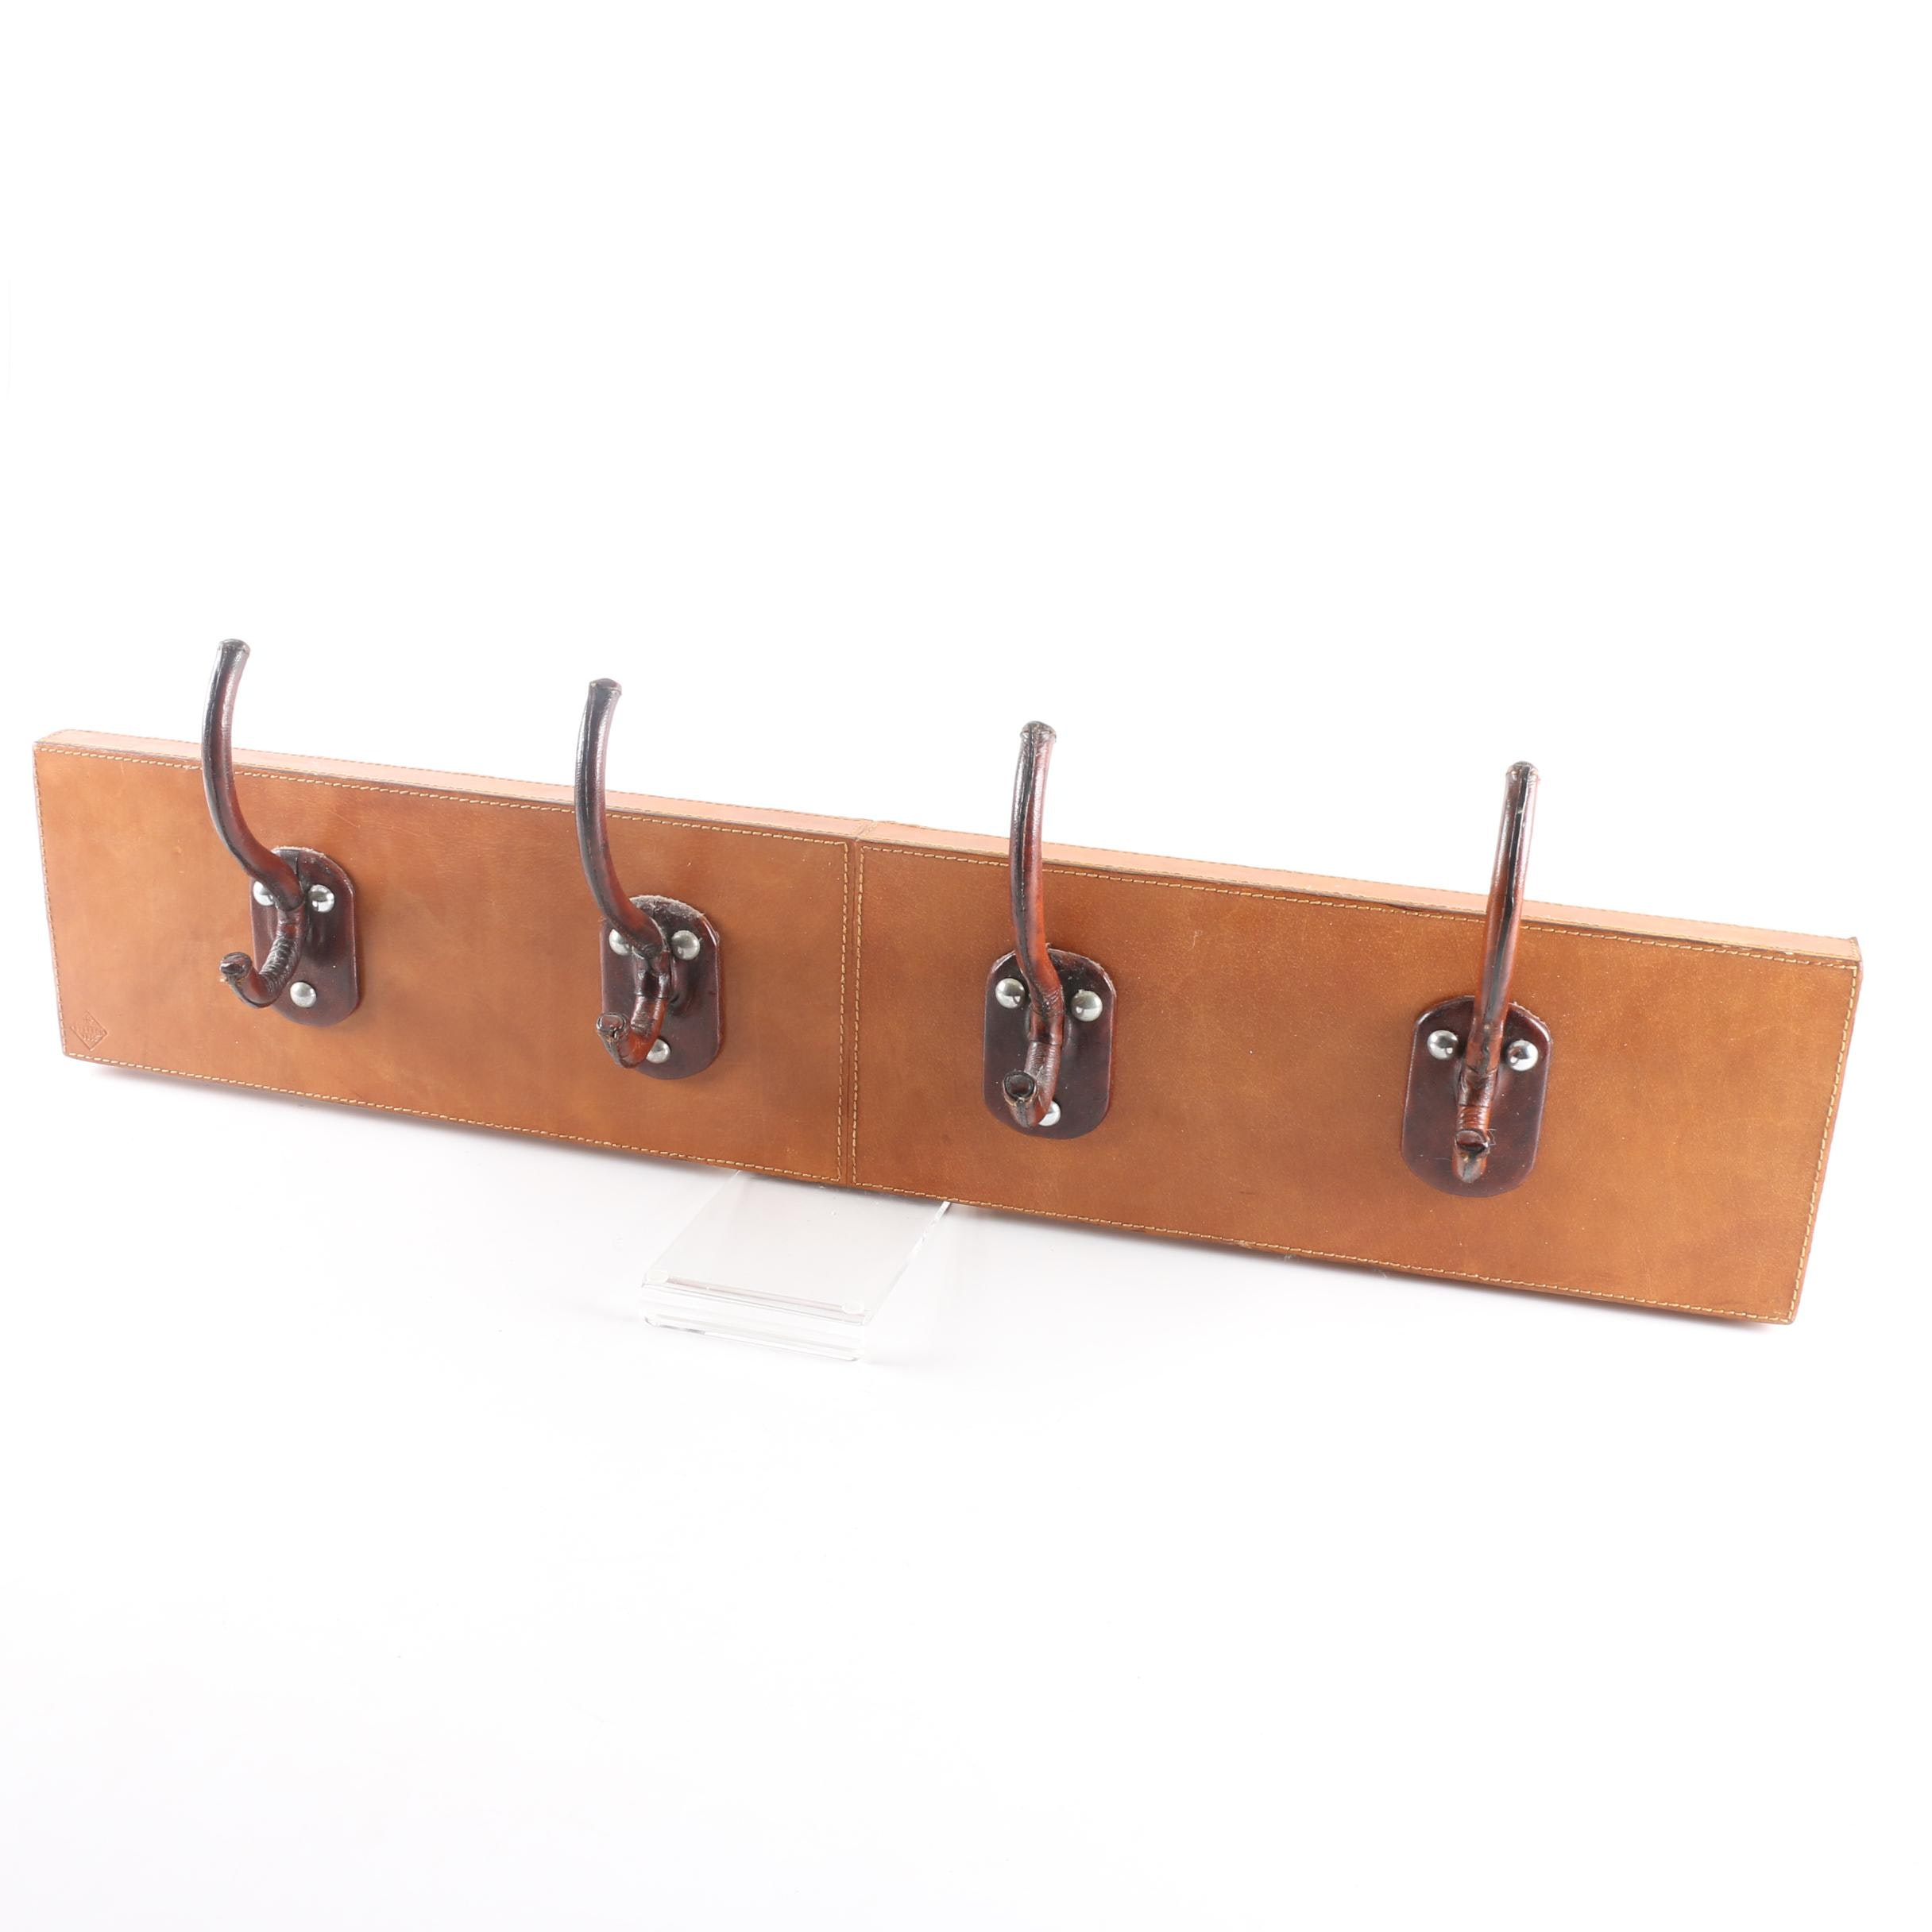 Hanging Leather Covered Wood Coat and Hat Rack with Stetson Leather